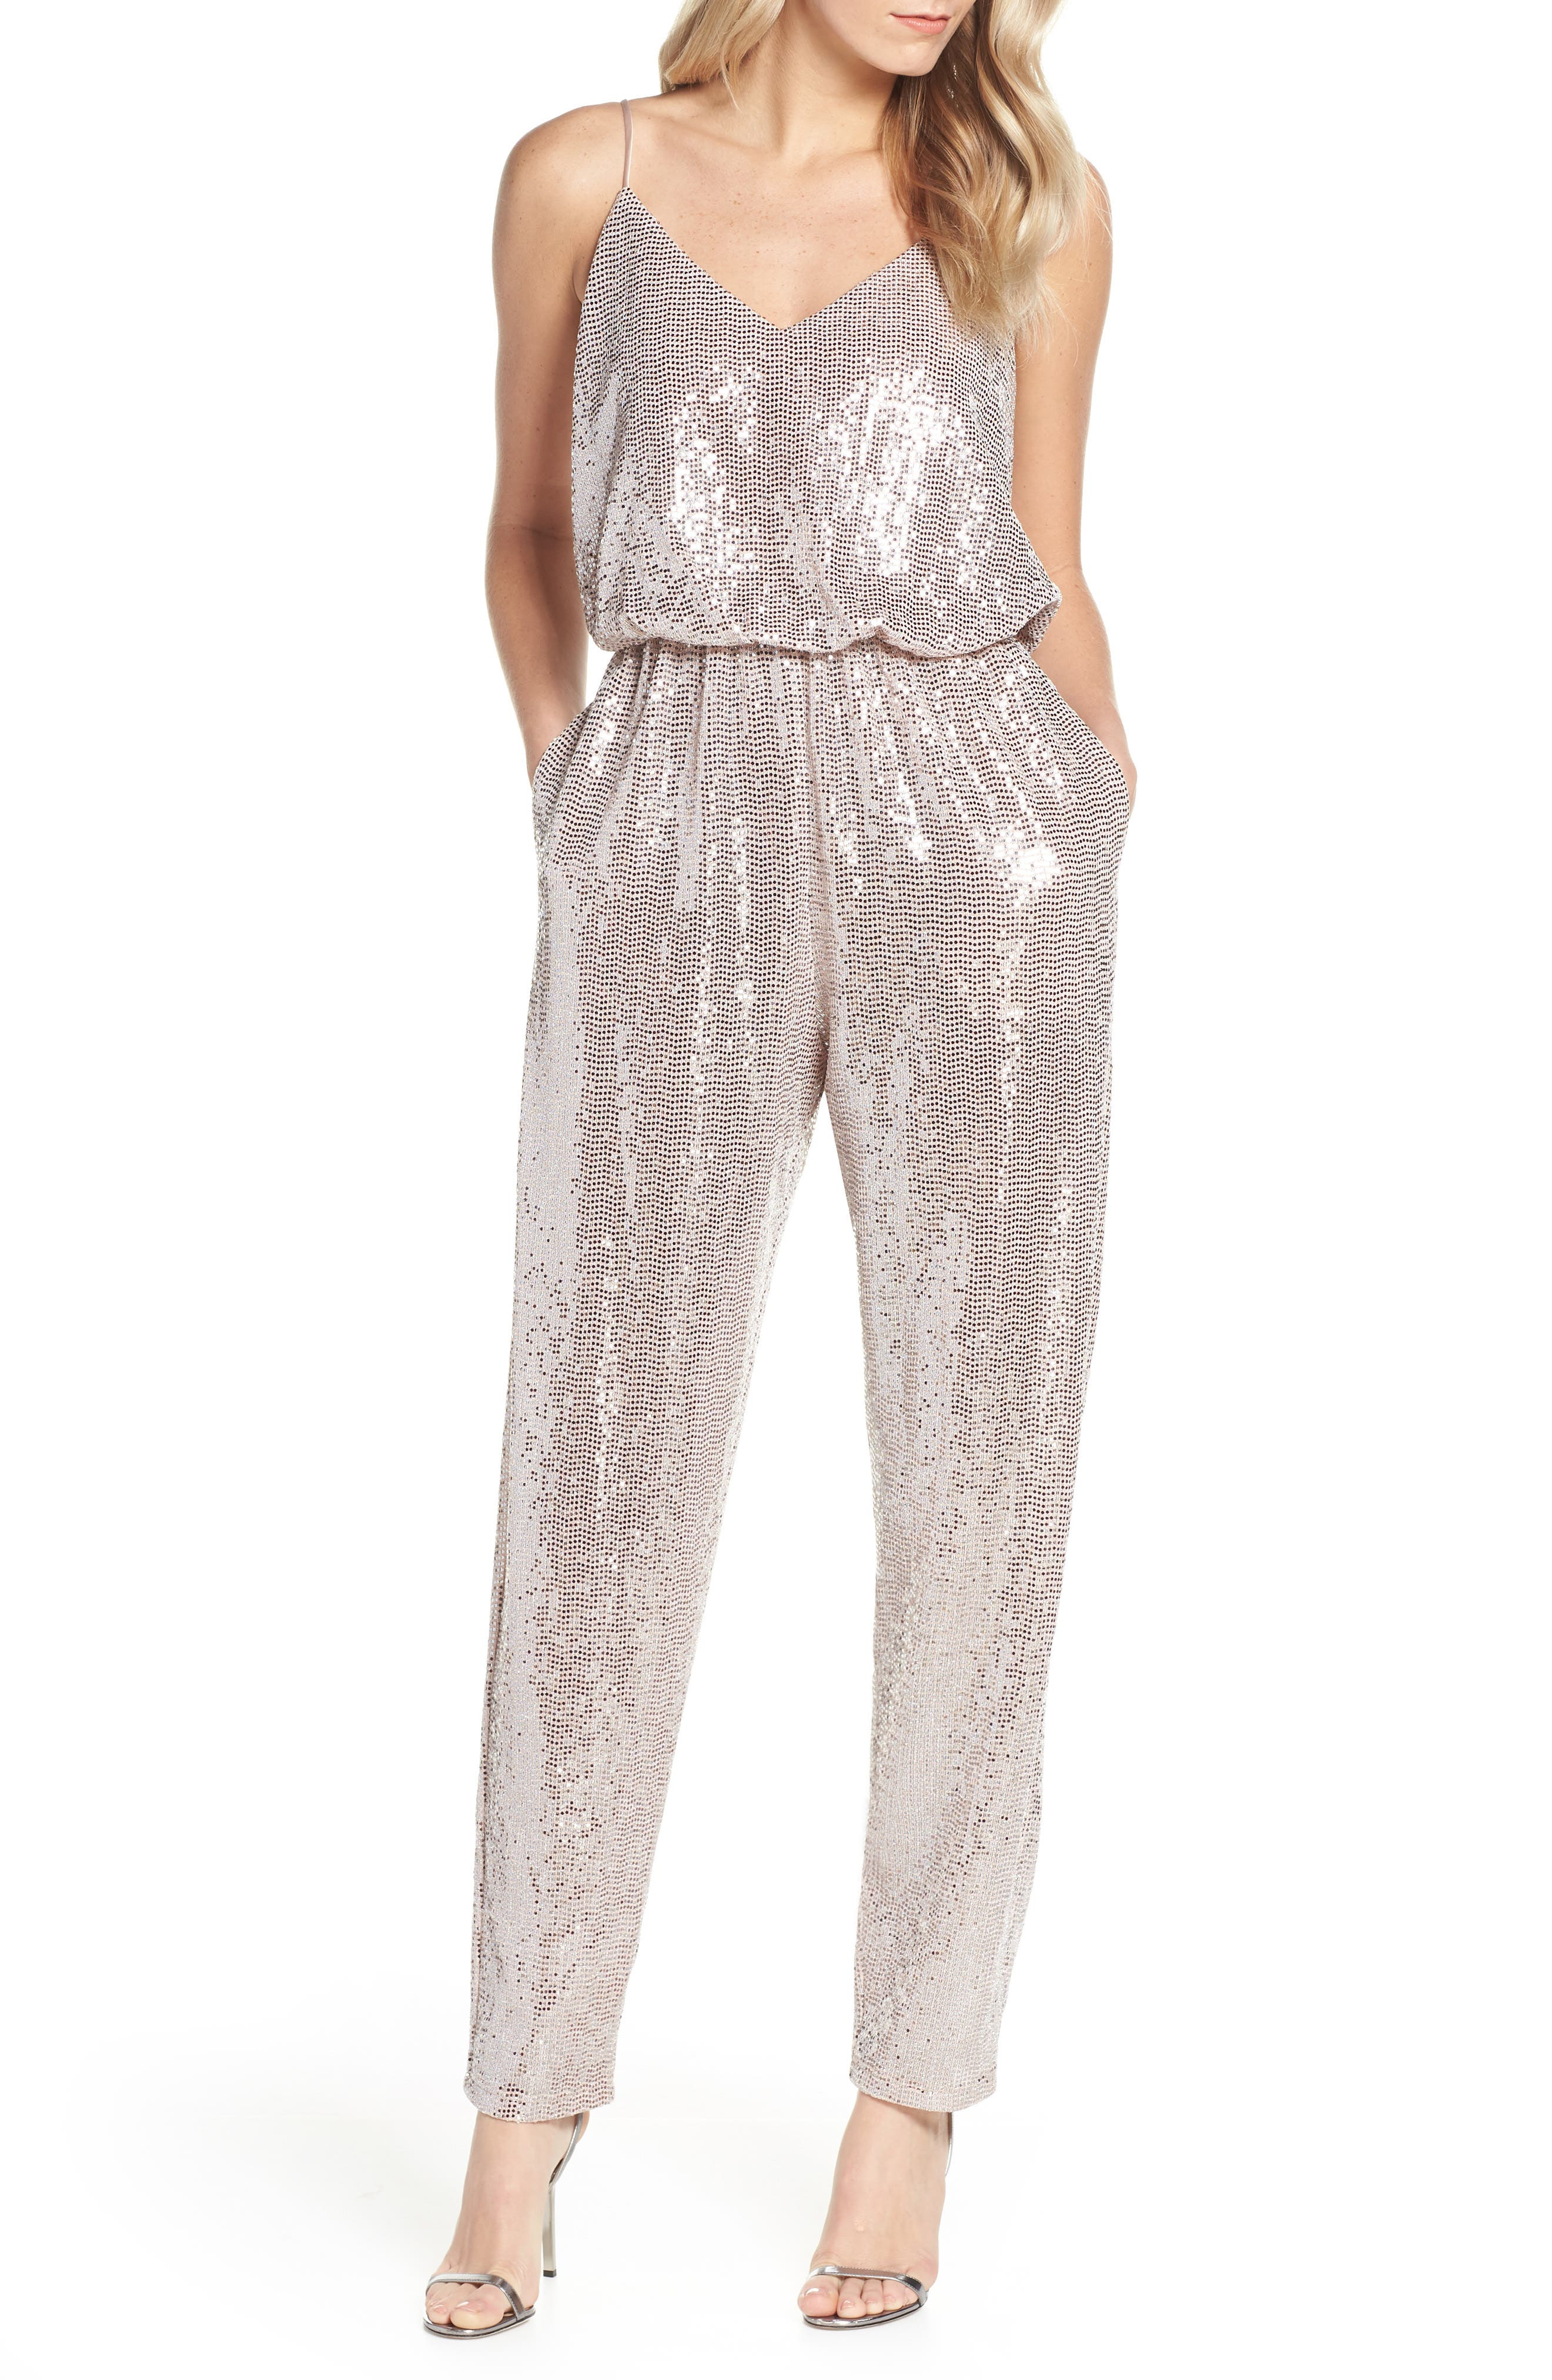 70s Prom, Formal, Evening, Party Dresses Womens Eliza J Sequin Jumpsuit $148.00 AT vintagedancer.com